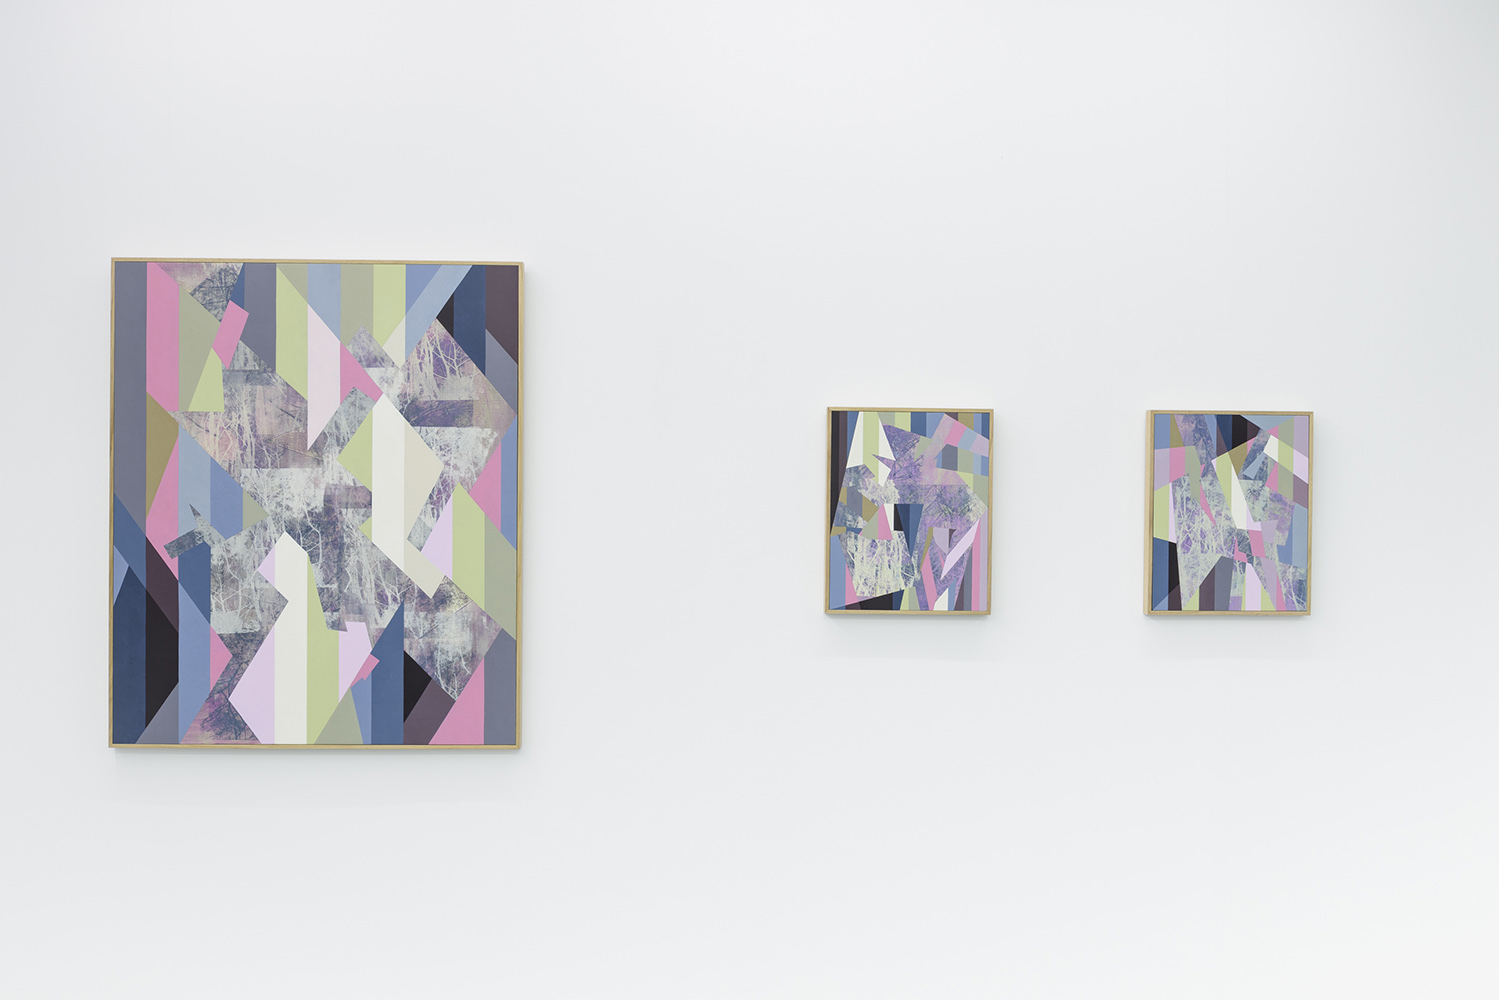 Installation: A part and between, Five Walls<br> Parapet, Splinter and Castaway<br>Image credit: Christopher Sanders